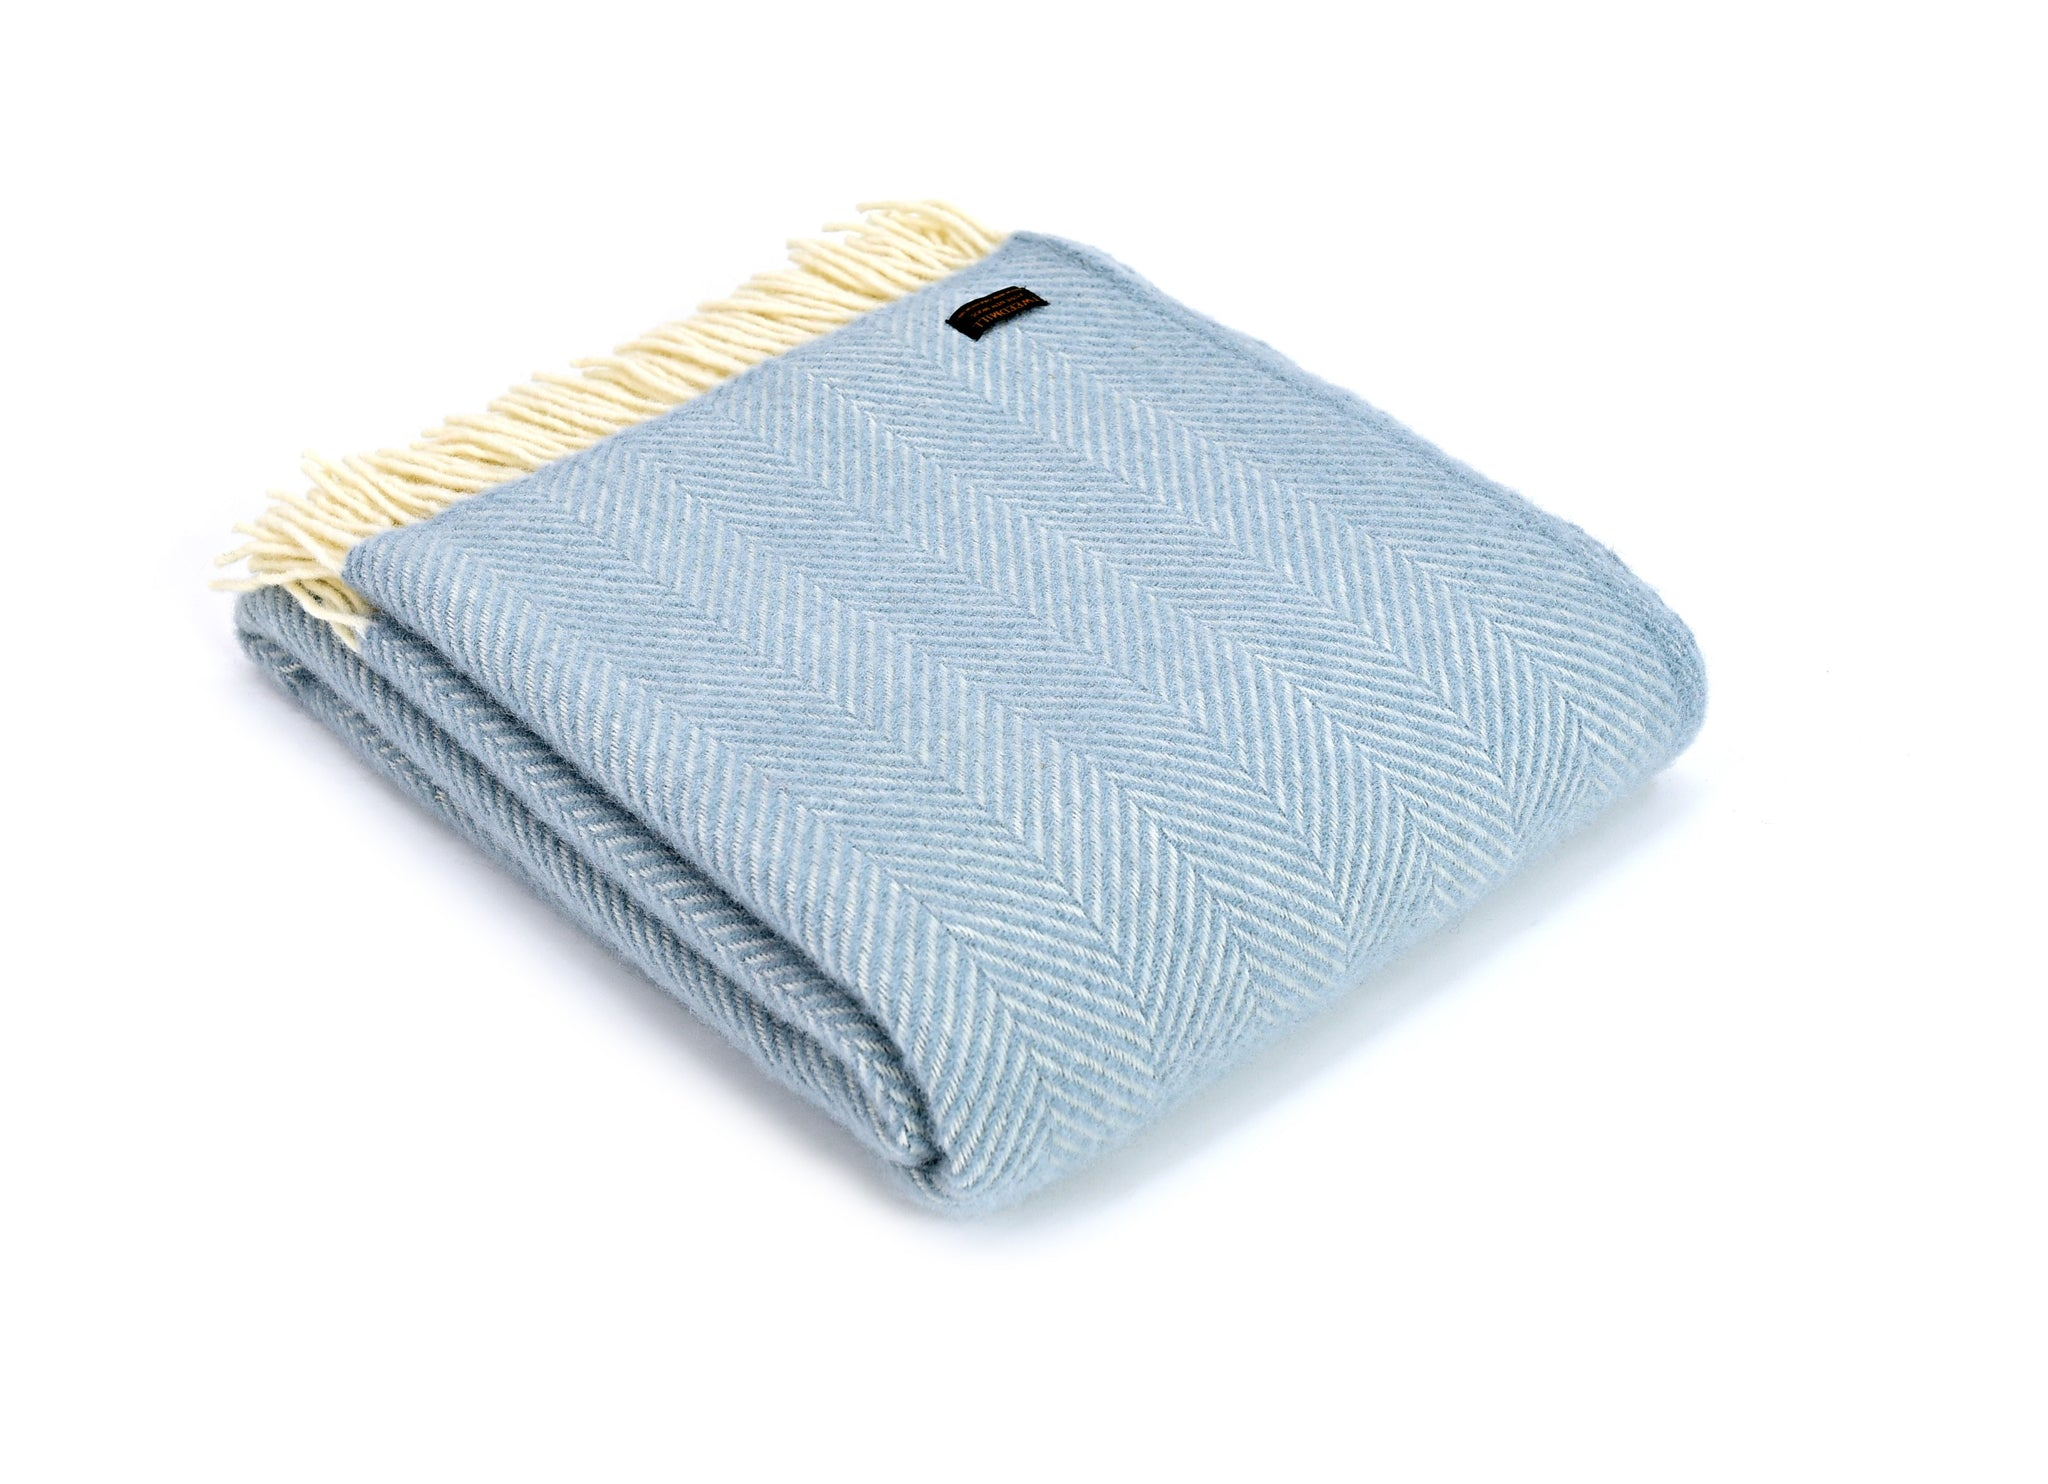 Tweedmill Duck Egg and Cream Fishbone Wool Blanket Throw